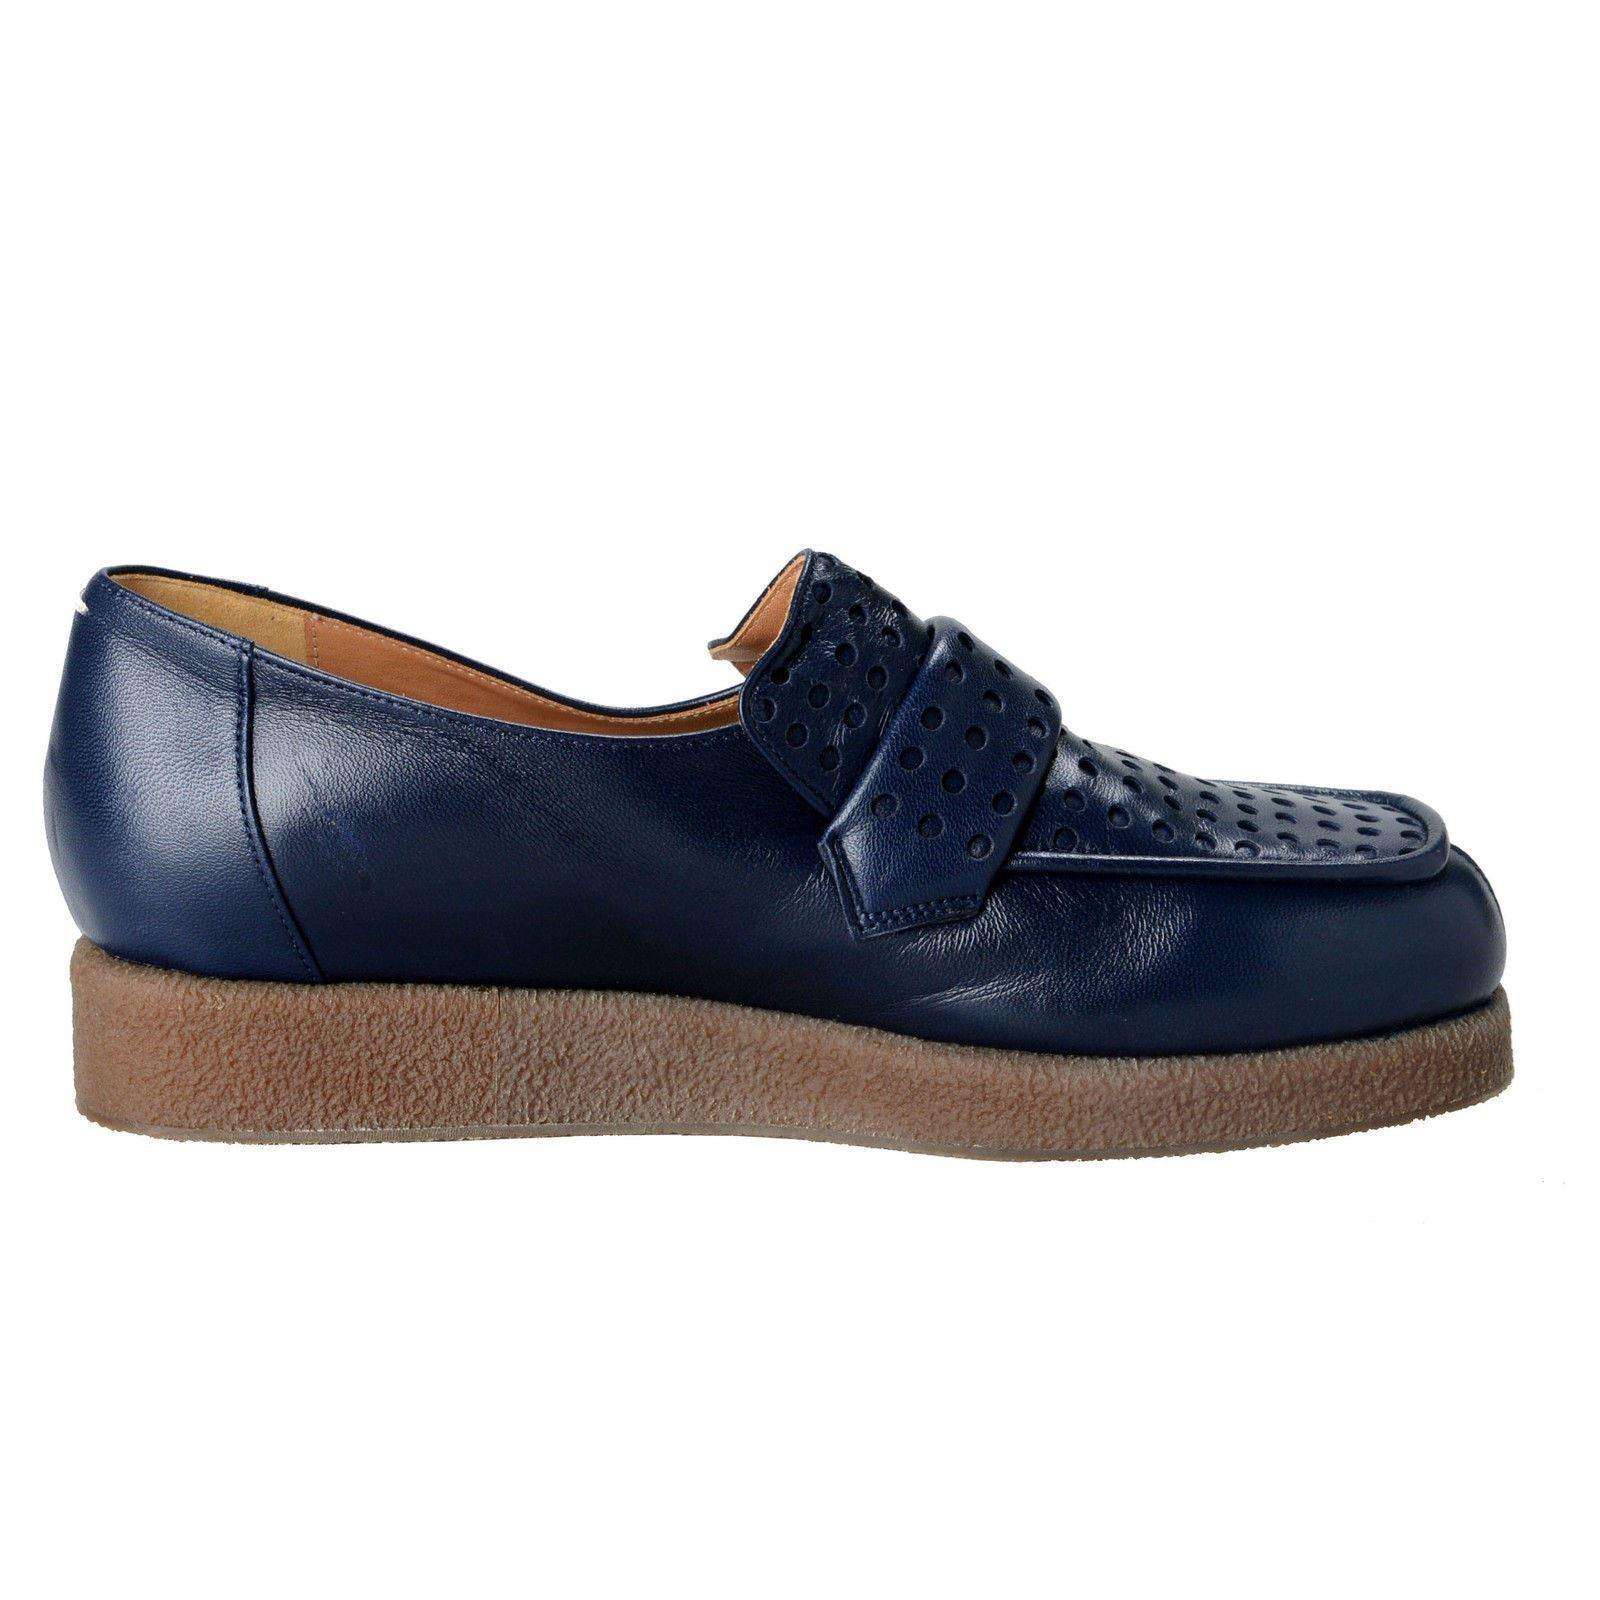 MAISON MARGIELA 22 Loafers Blue Women